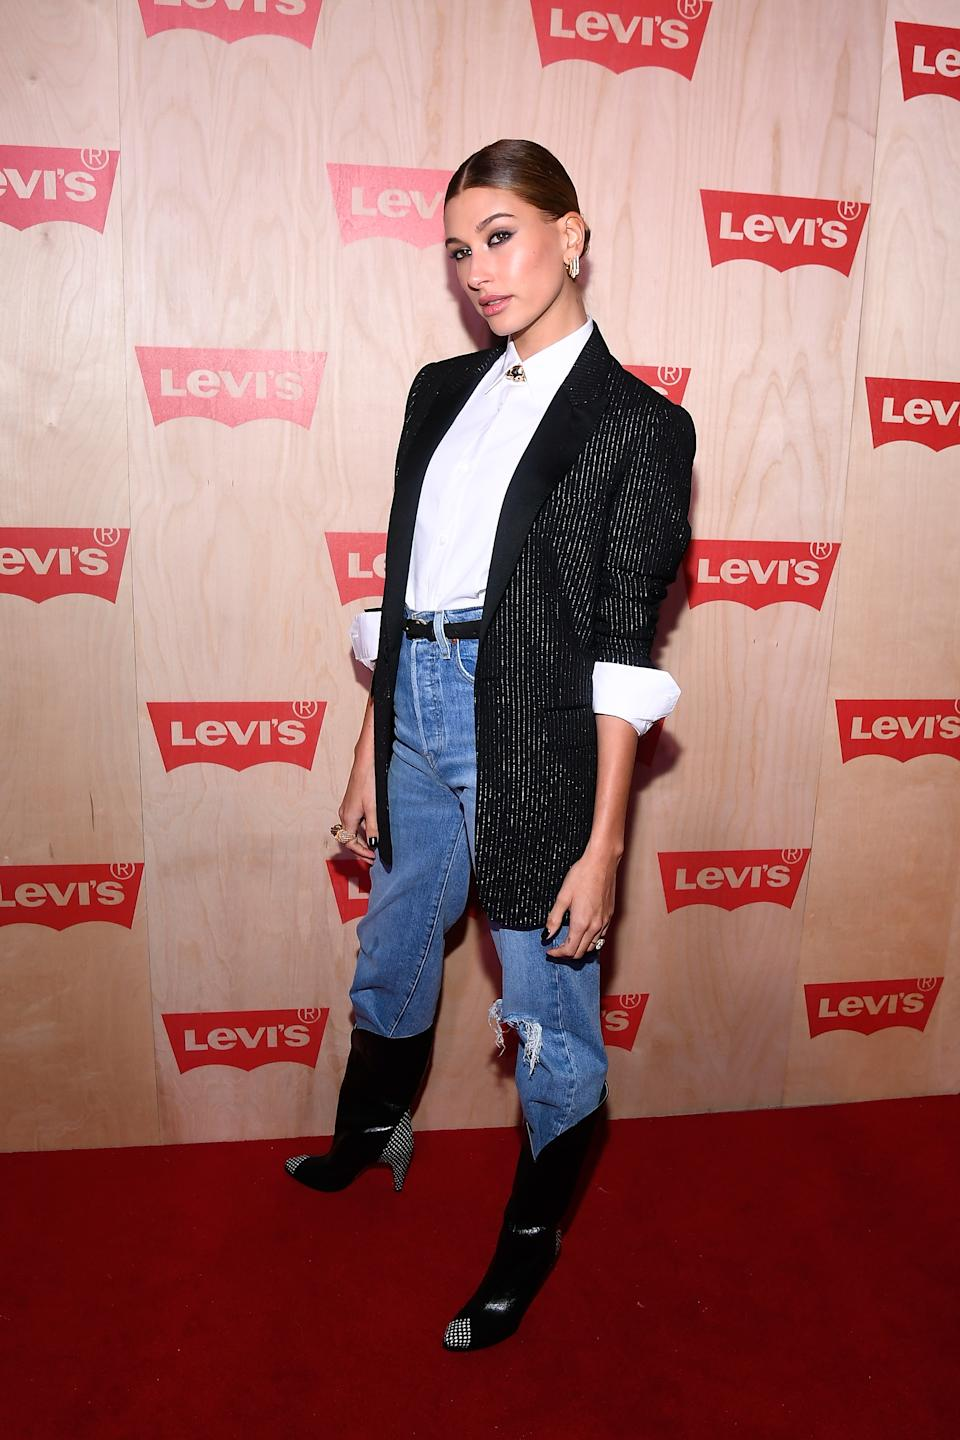 NEW YORK, NY - NOVEMBER 15:  Hailey Baldwin attends the Levi's Times Square Store Opening on November 15, 2018 in New York City.  (Photo by Dave Kotinsky/Getty Images for Levis)